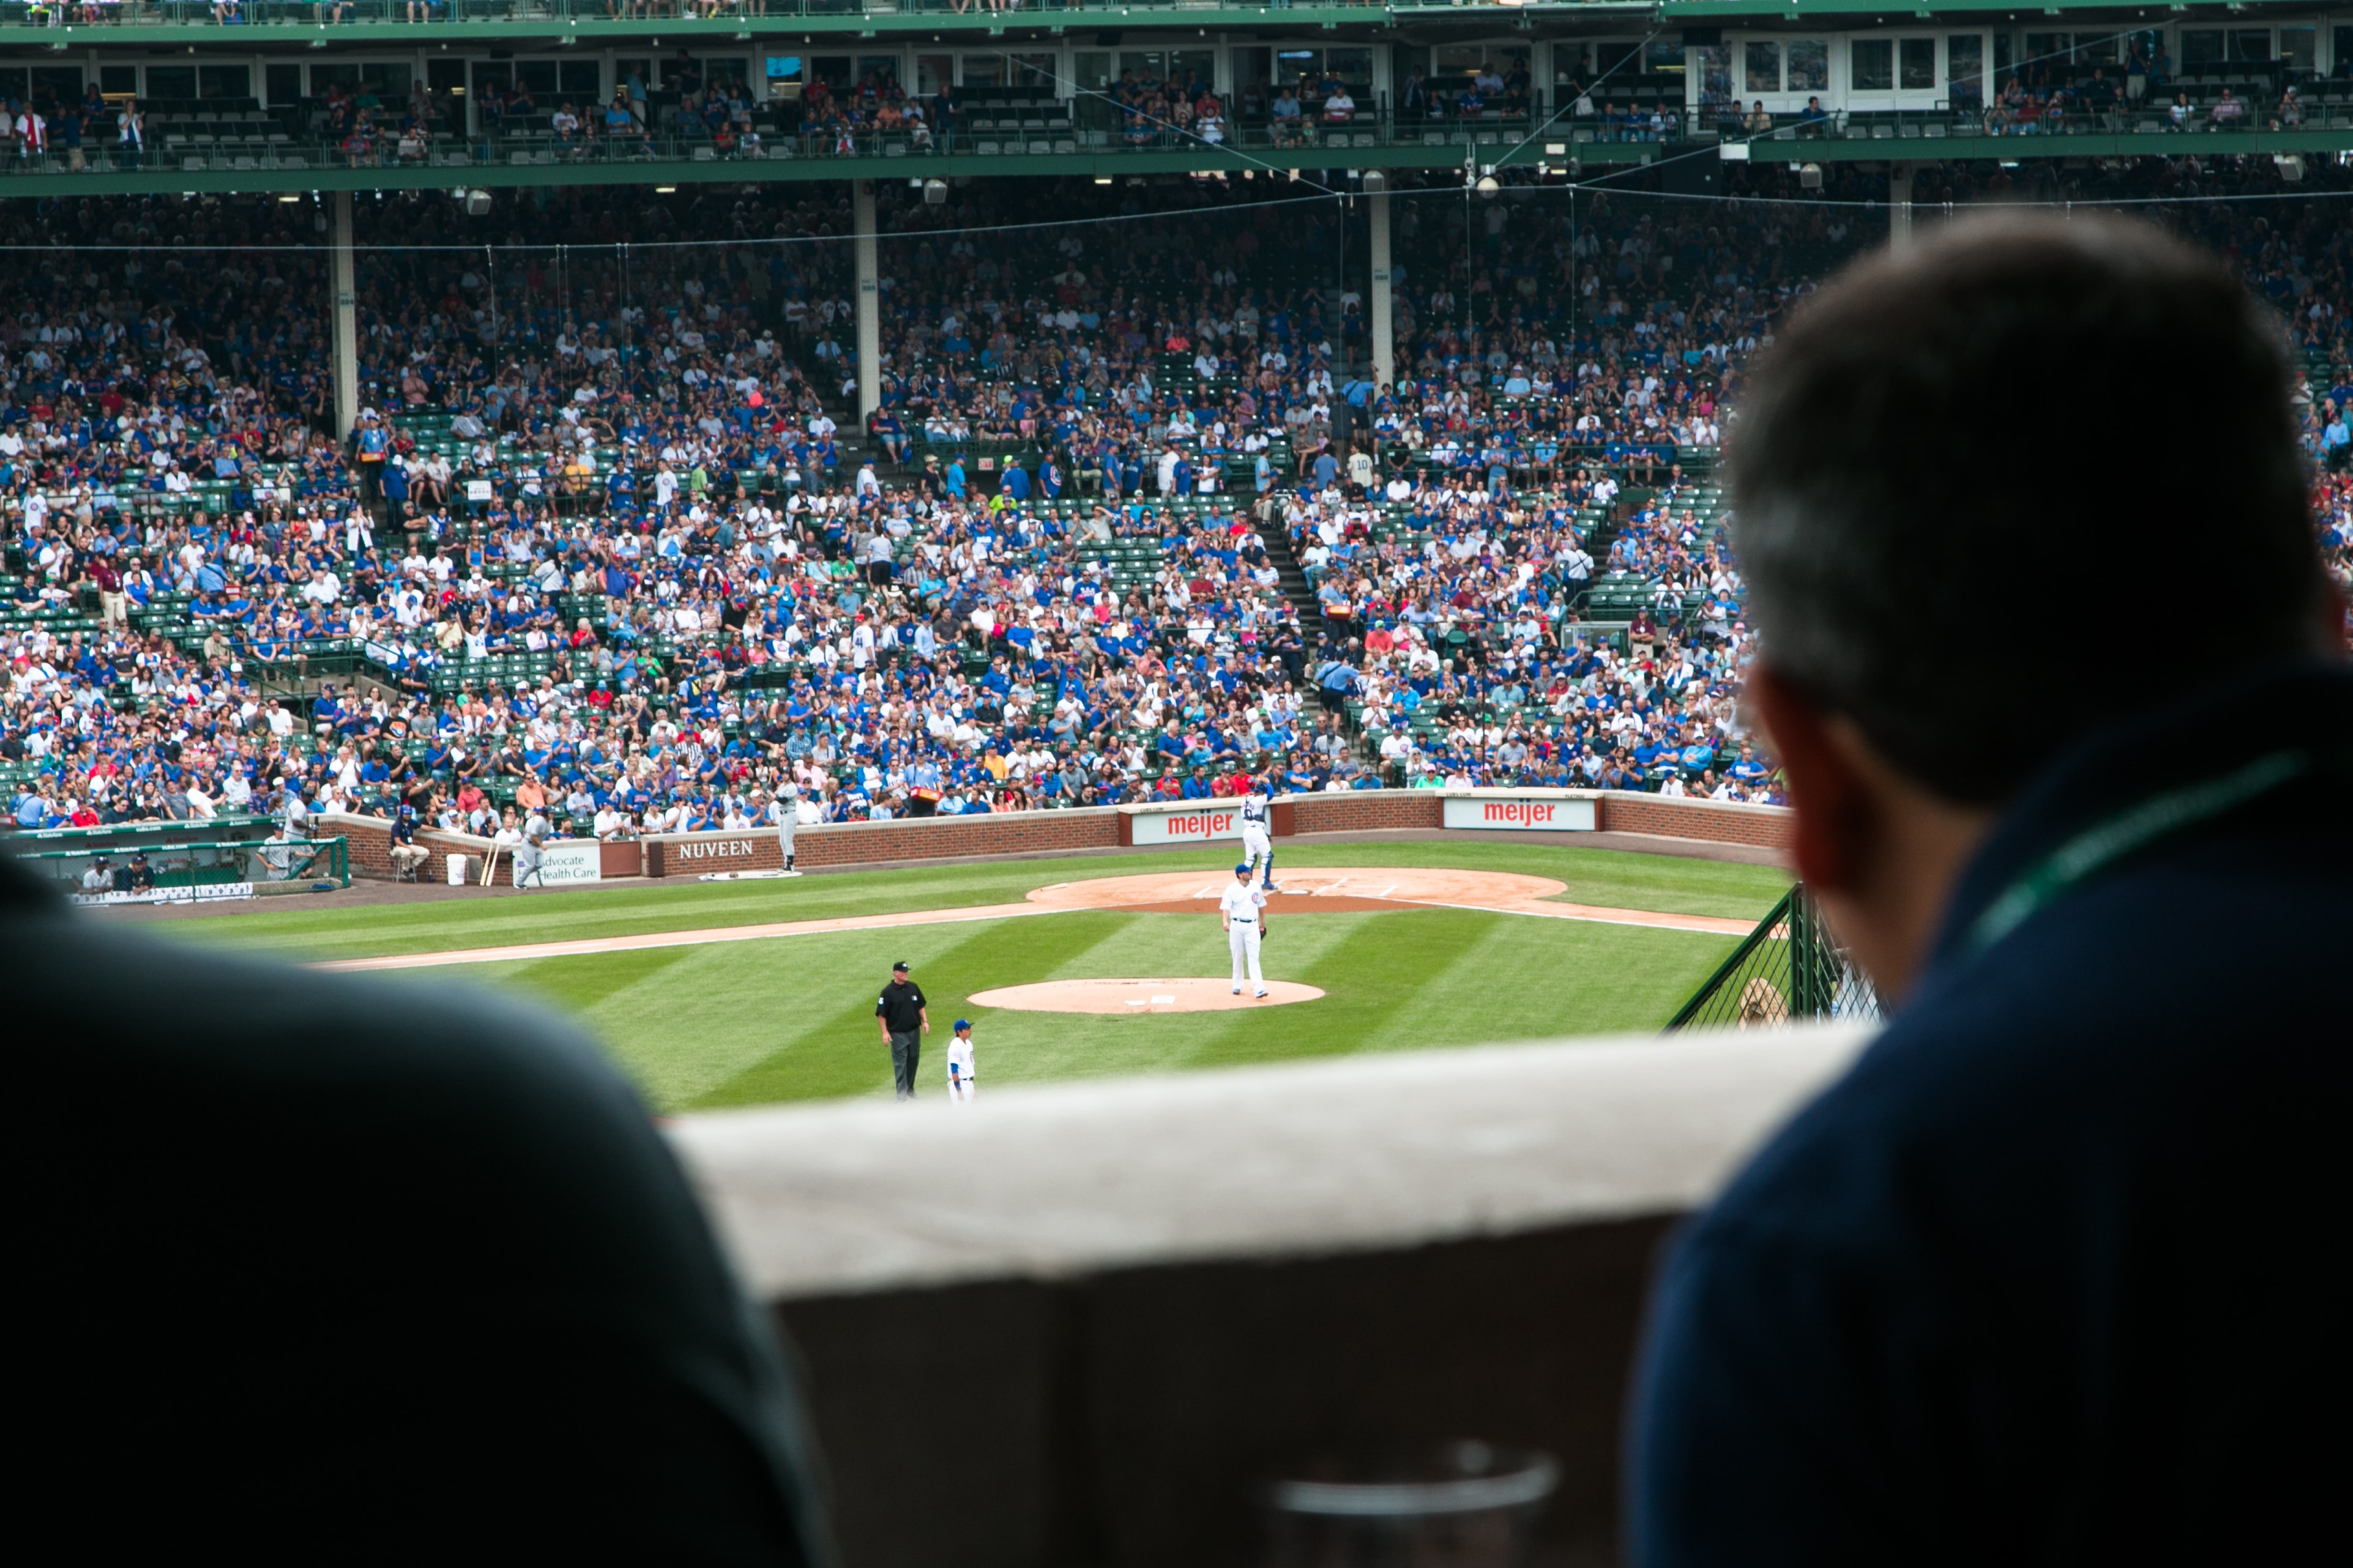 A shot from the announcer area at a professional baseball game in Chicago